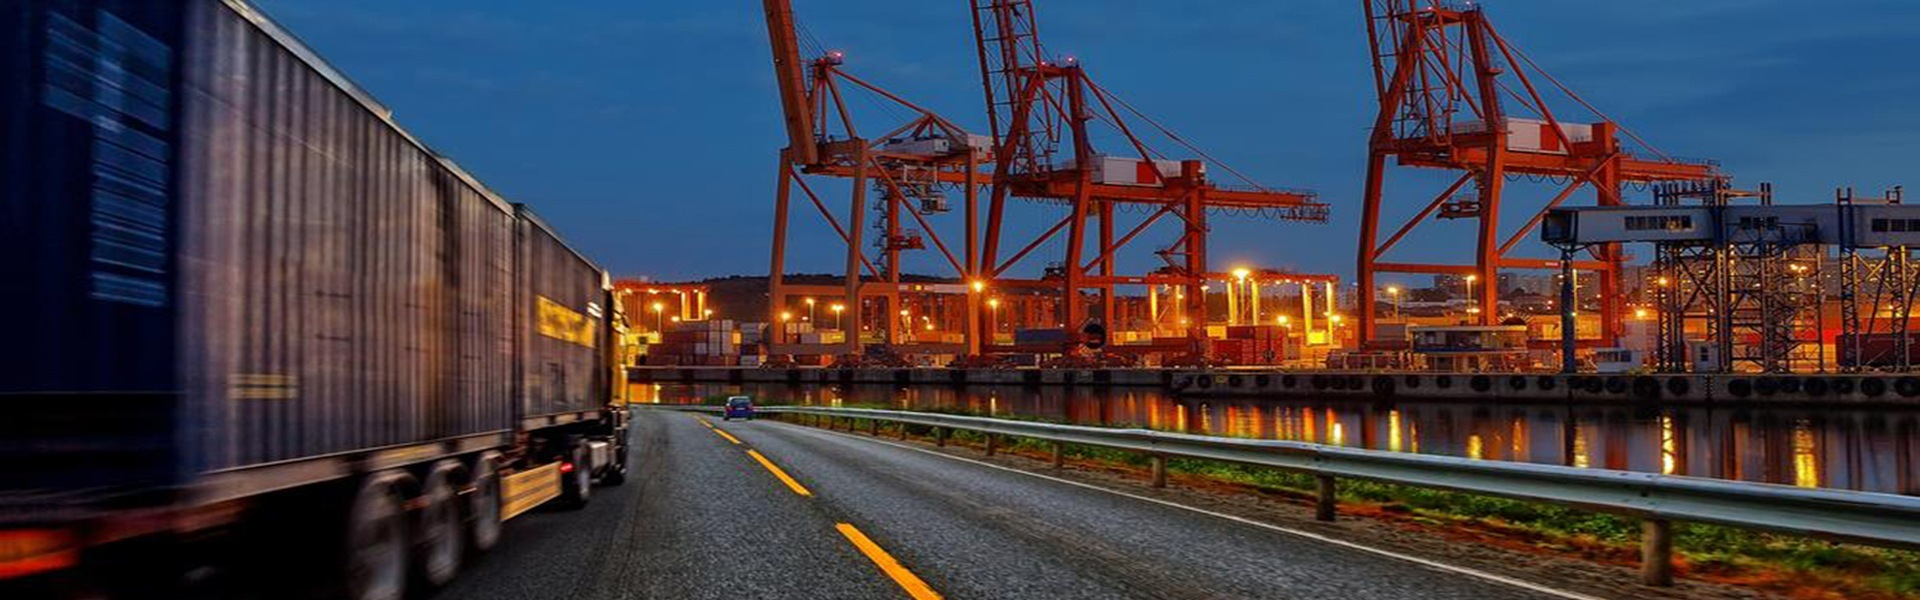 Intermodal Freight And Drayage Services